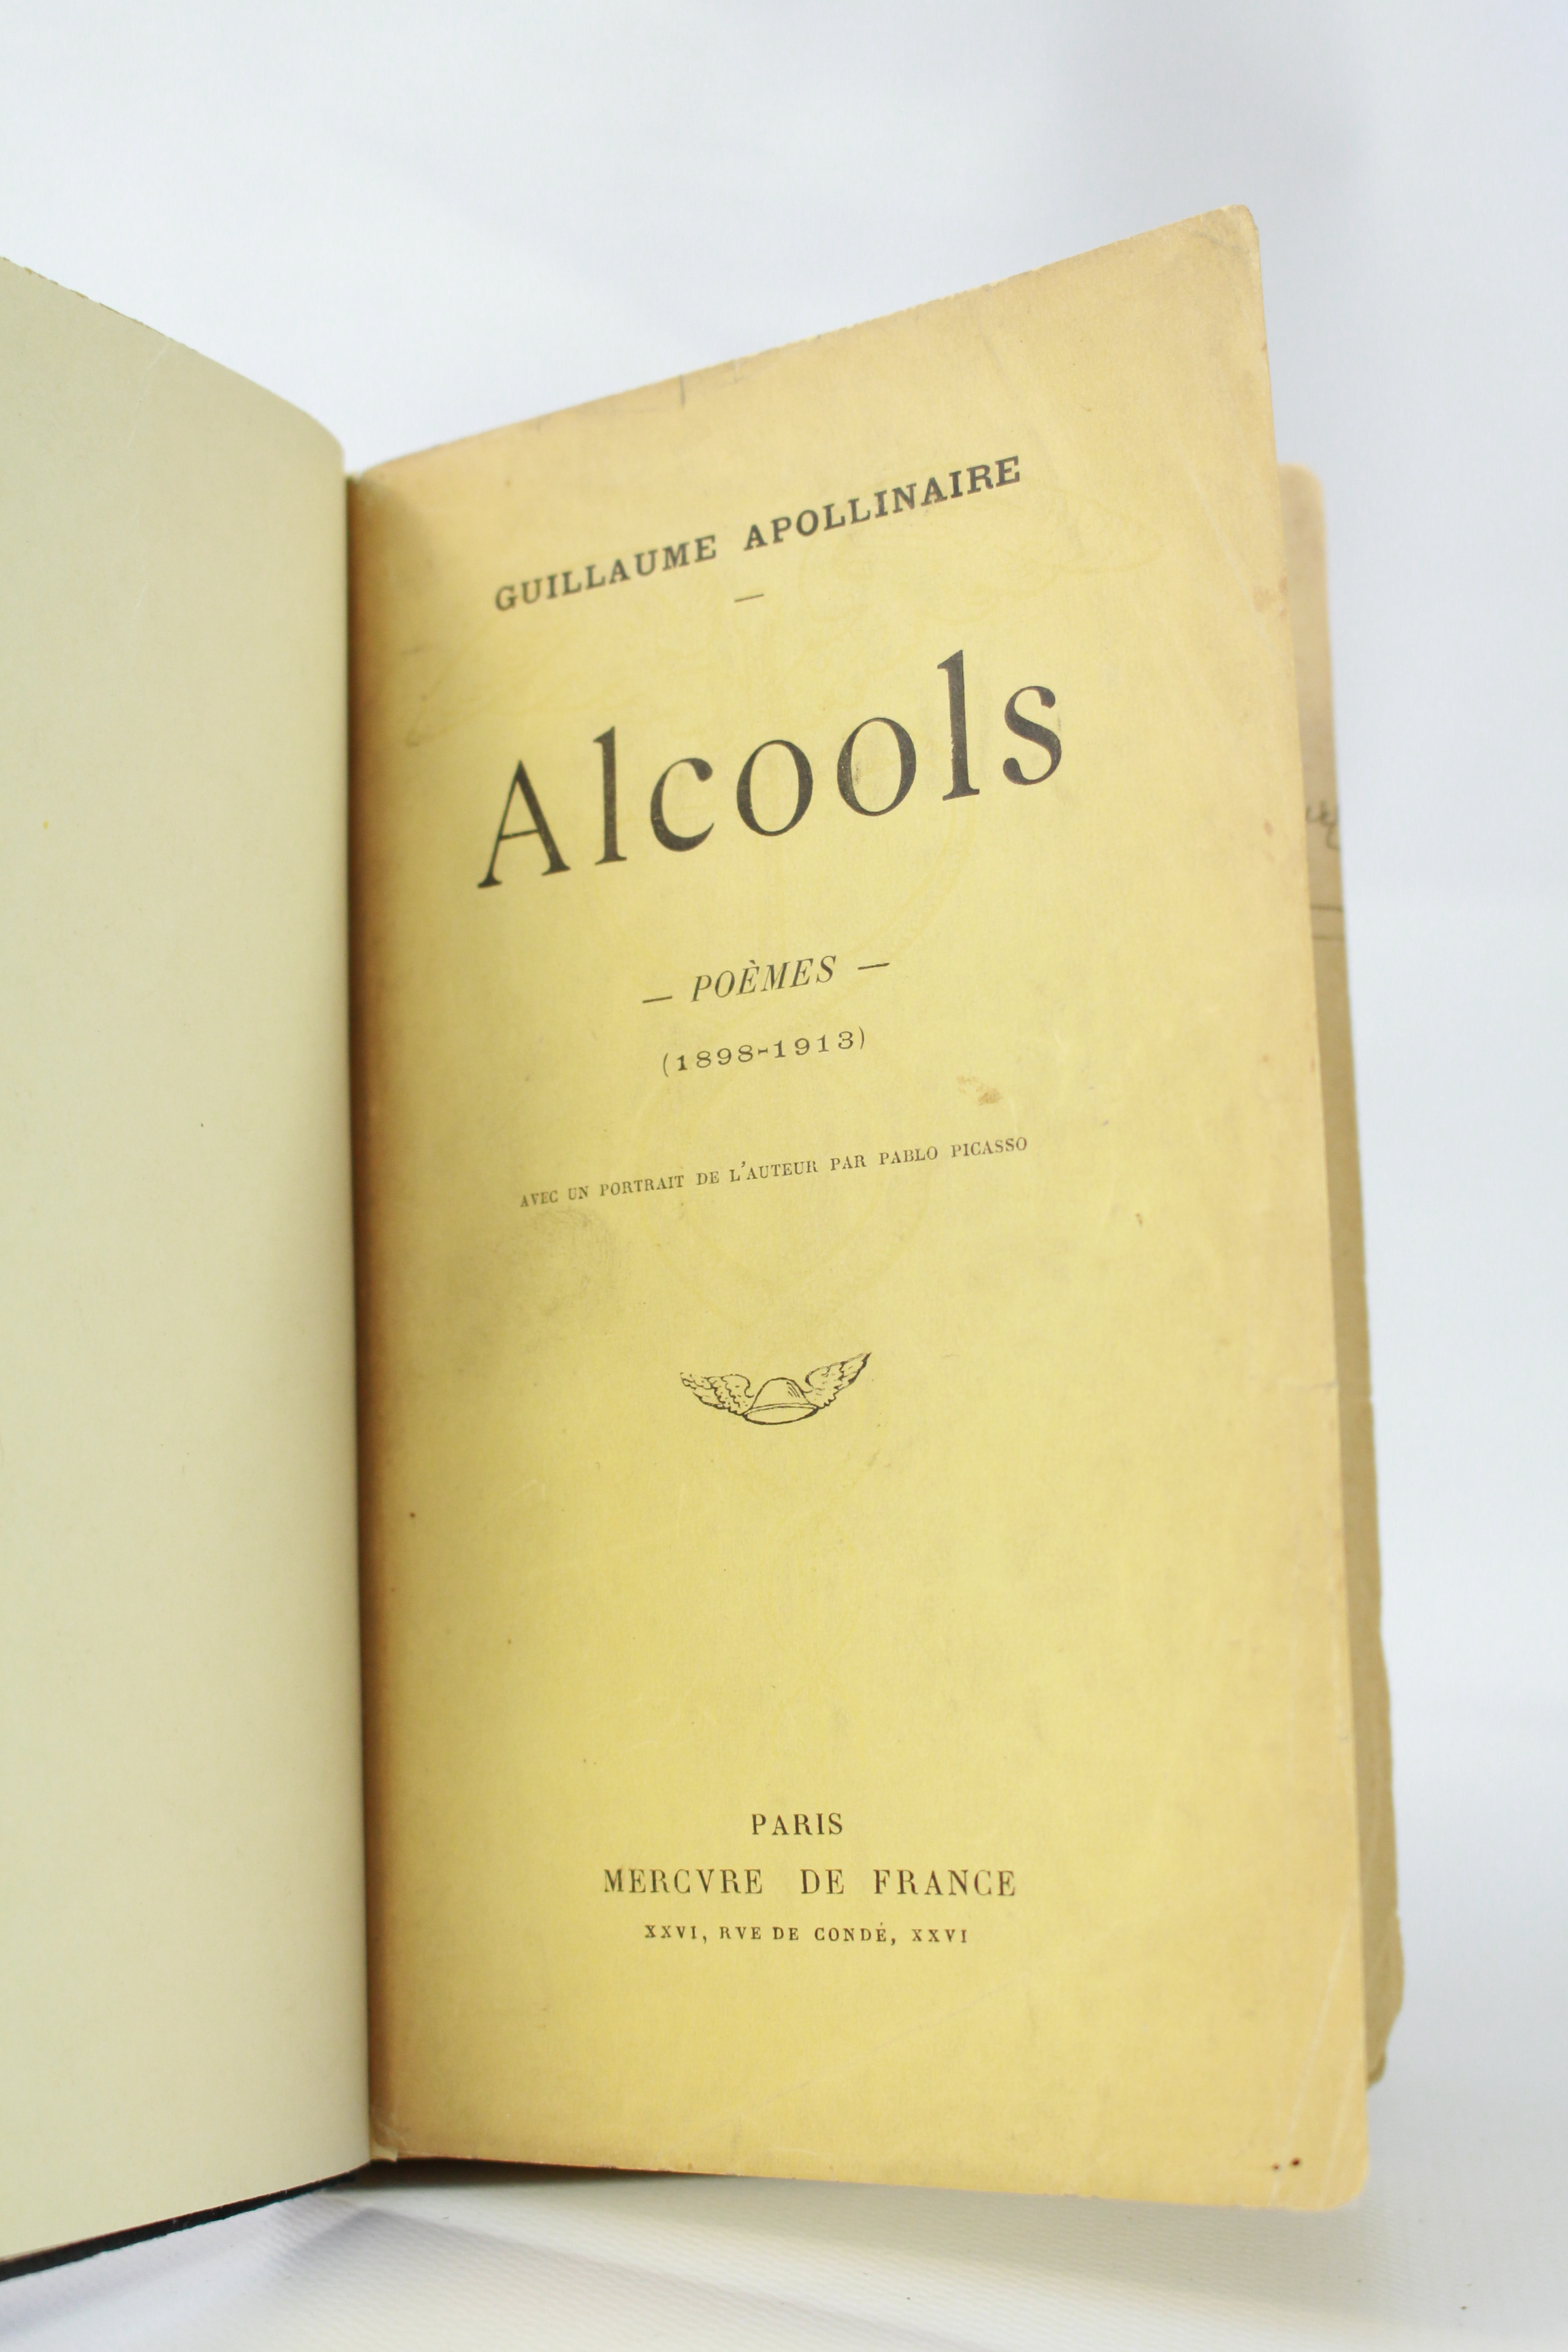 Details About Apollinaire Alcools Poemes 1898 1913 First Edition Inscribed Fine Binding 1913